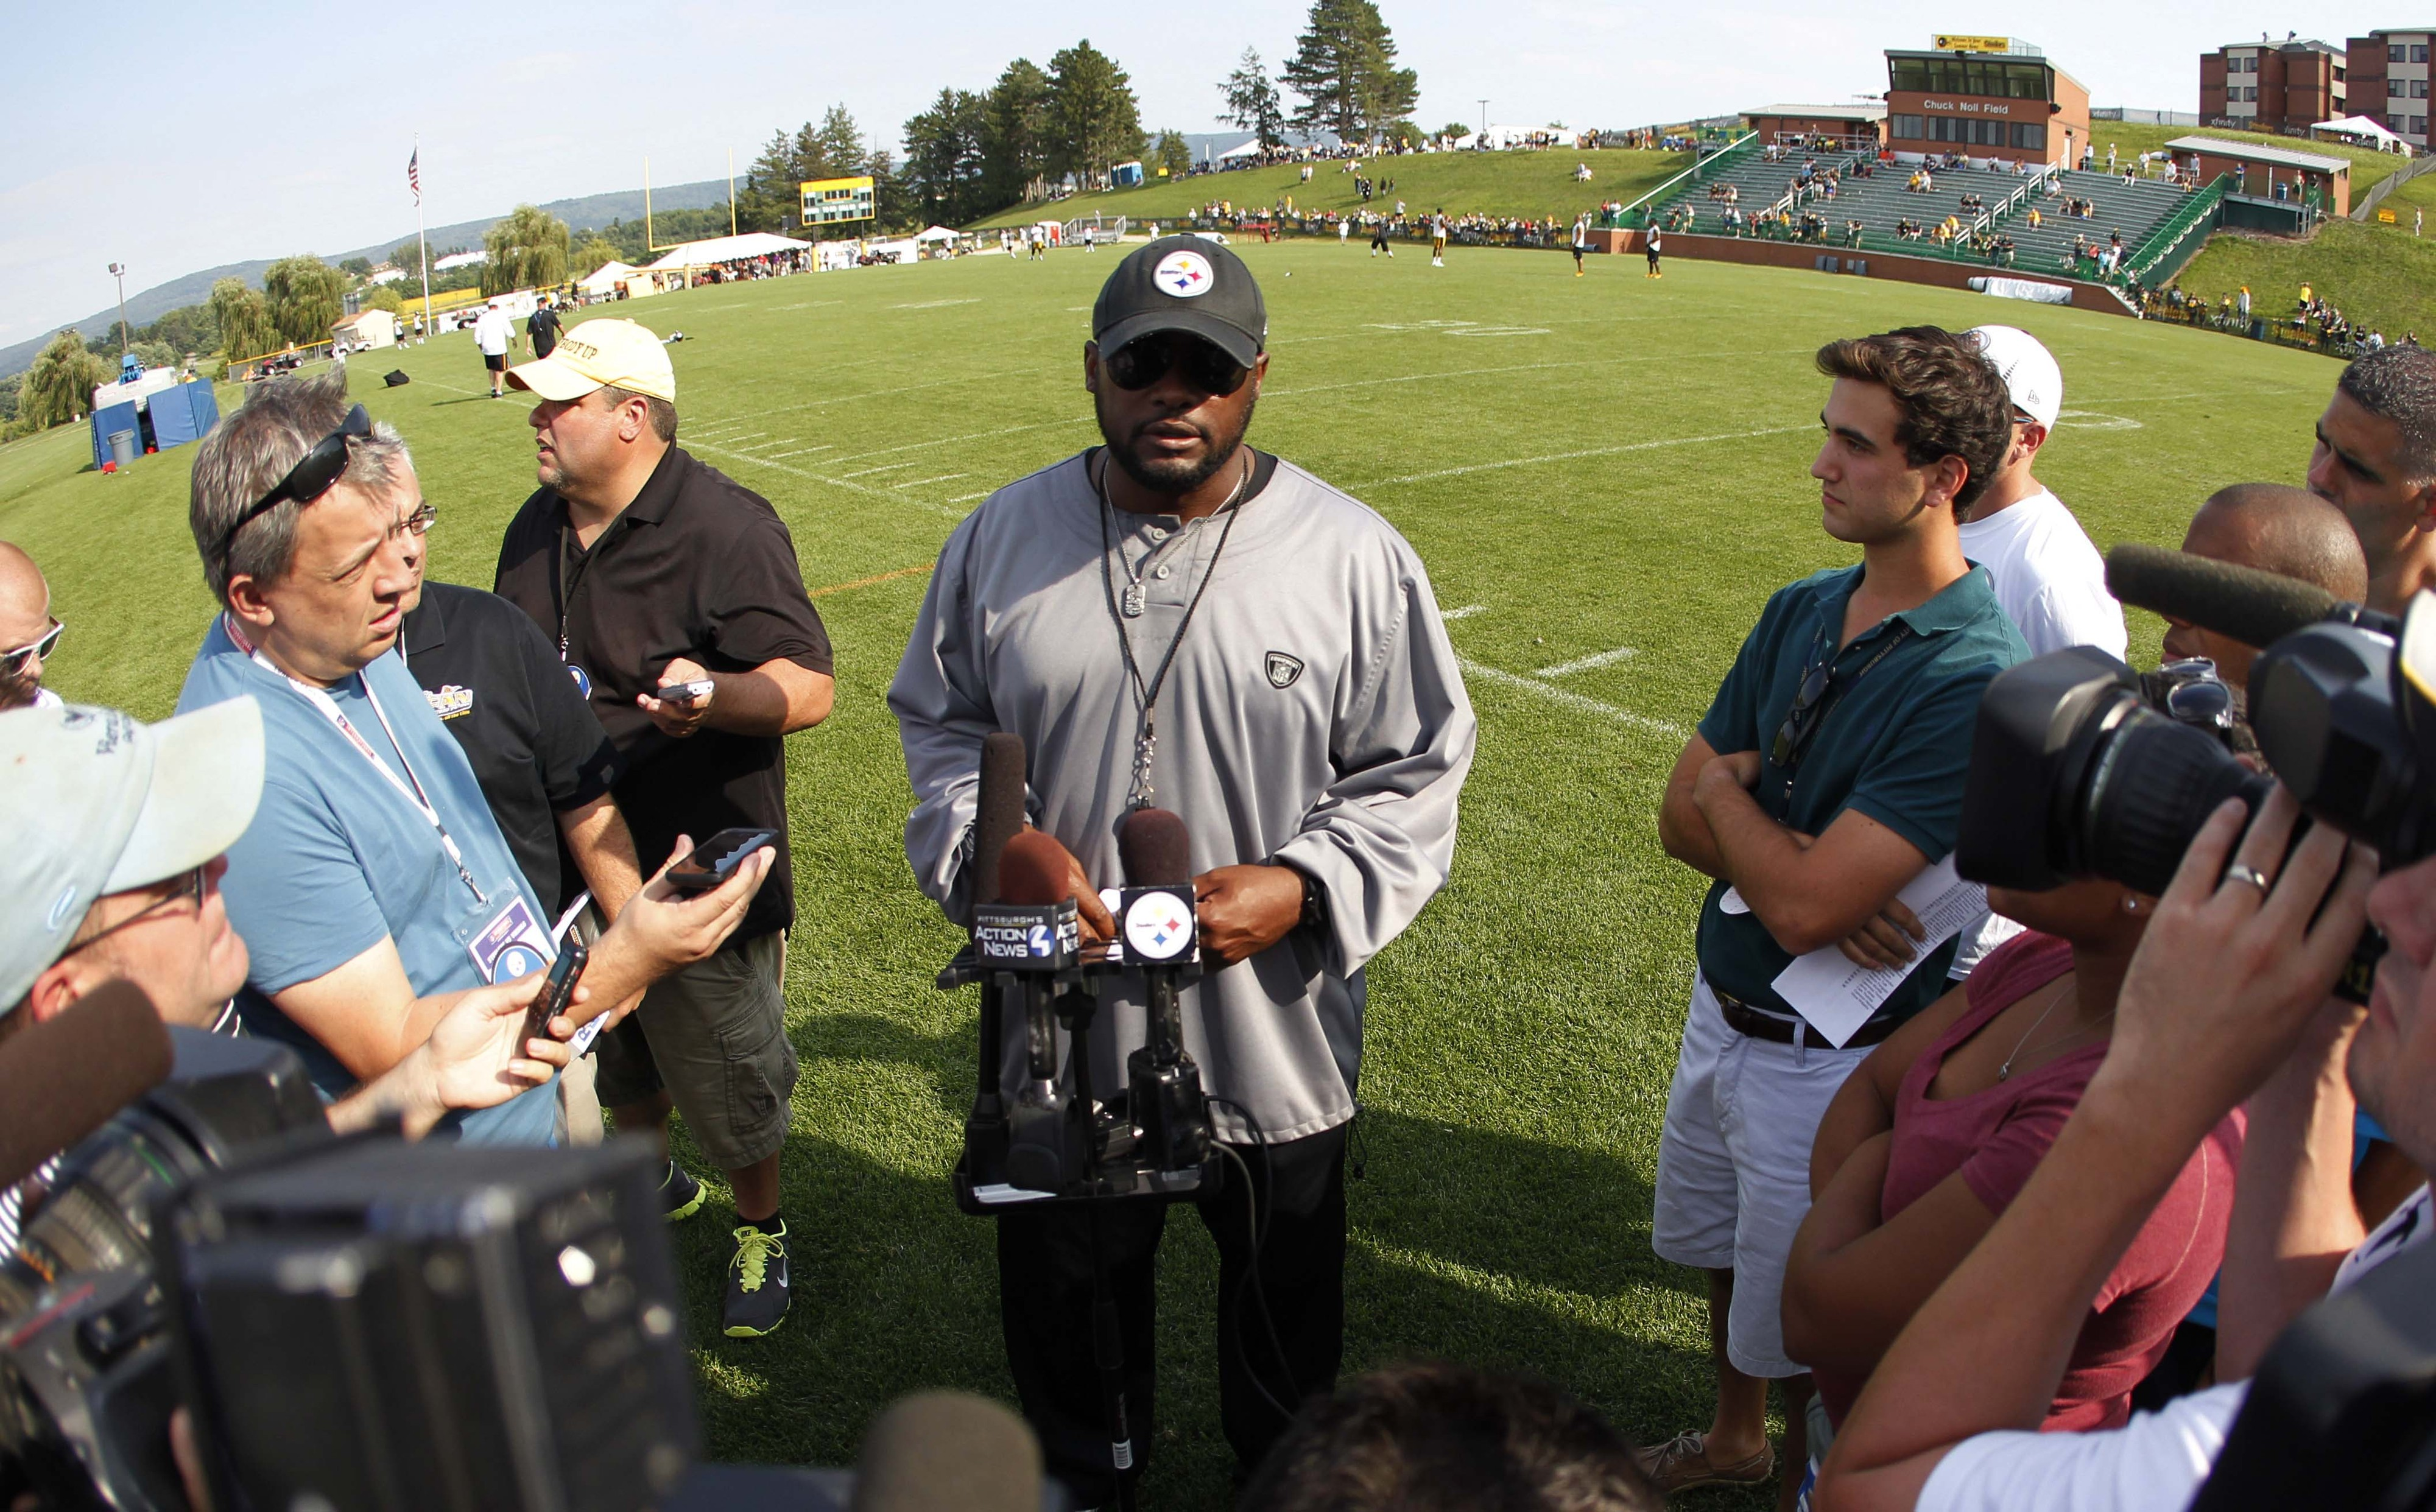 Mike Tomlin addressing the media at Latrobe during Steelers training camp 2014